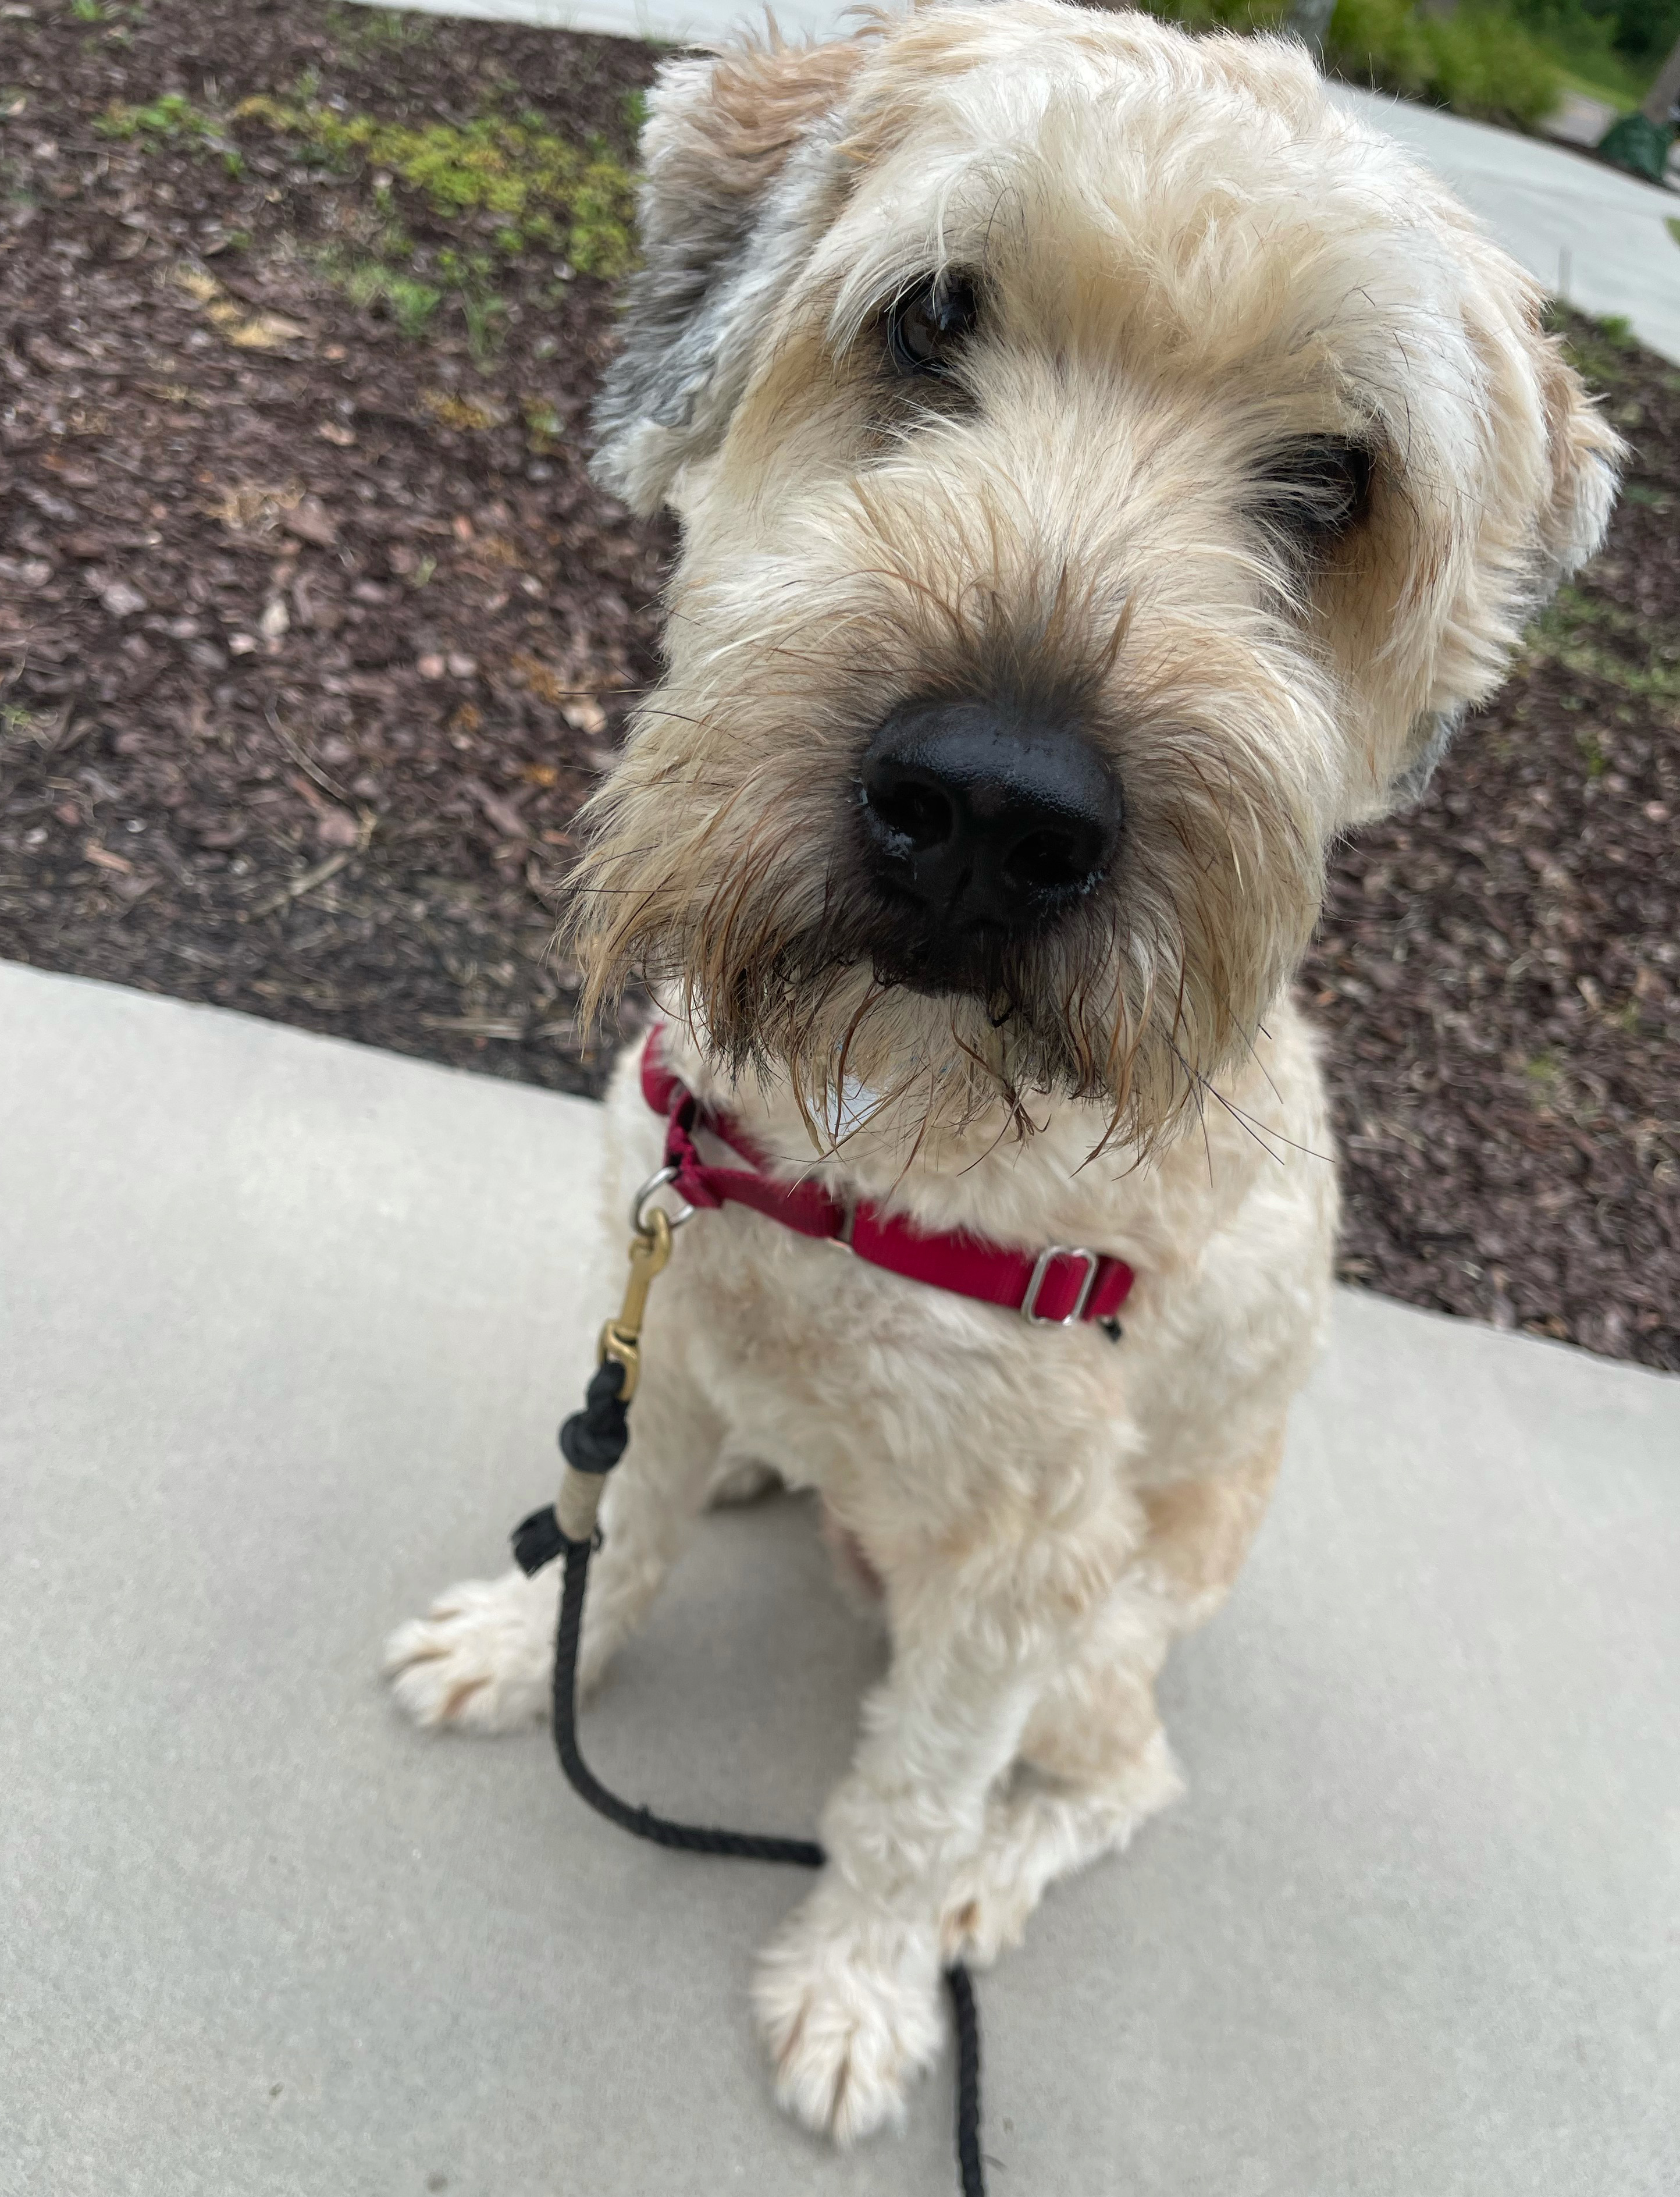 """Jerry is a 3-year-old soft coated Wheaten terrier named after Jerry Garcia. His owner, Morgan Waters, said """"This little dude is a mama's boy who loves to make new puppy friends and will do anything for a piece of cheese."""""""